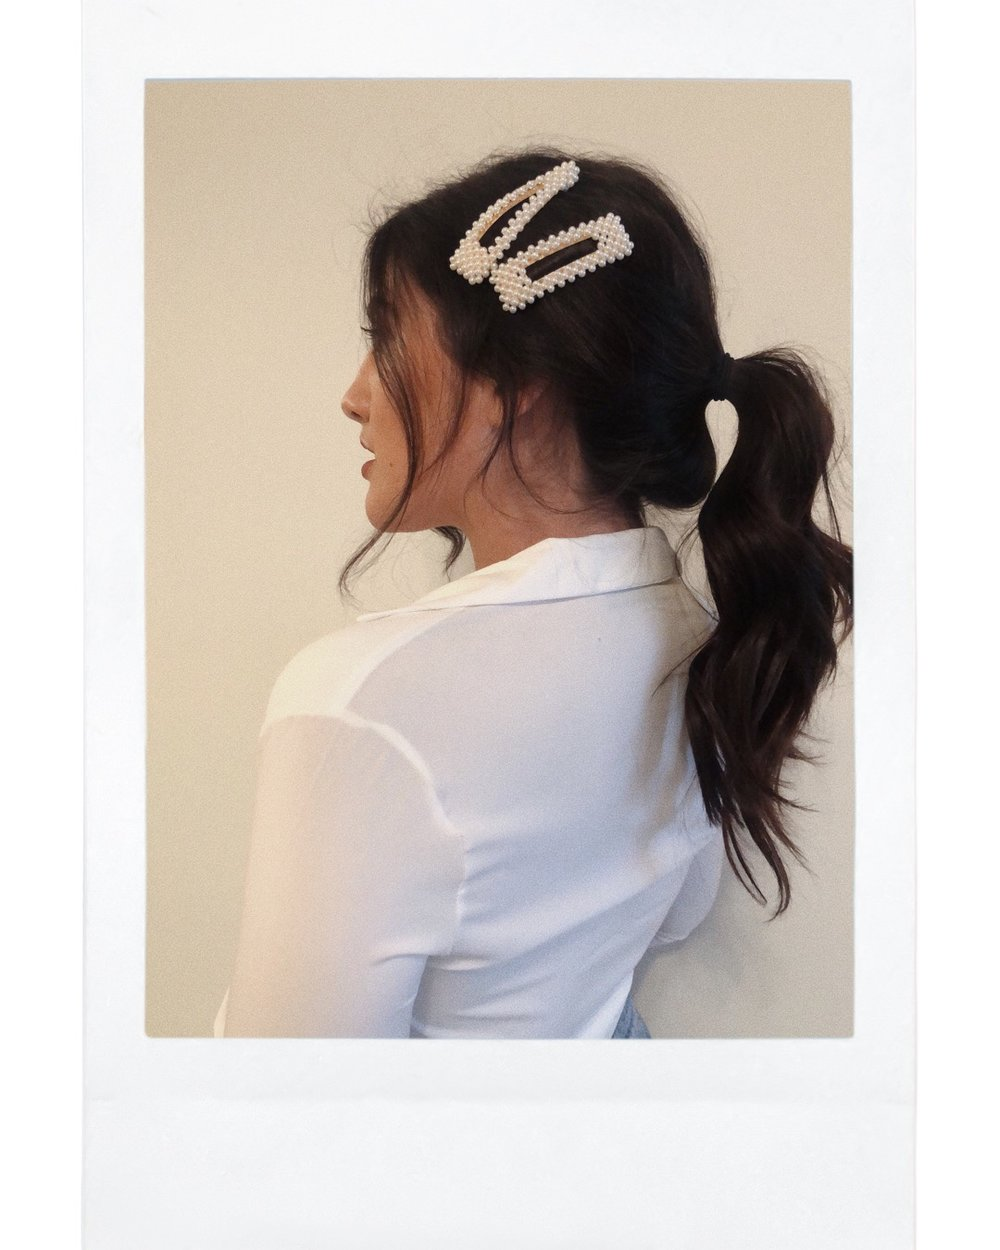 Ponytail - This was my favorite look out of all the ways I styled them. It is so casual & fabulous at the same time.